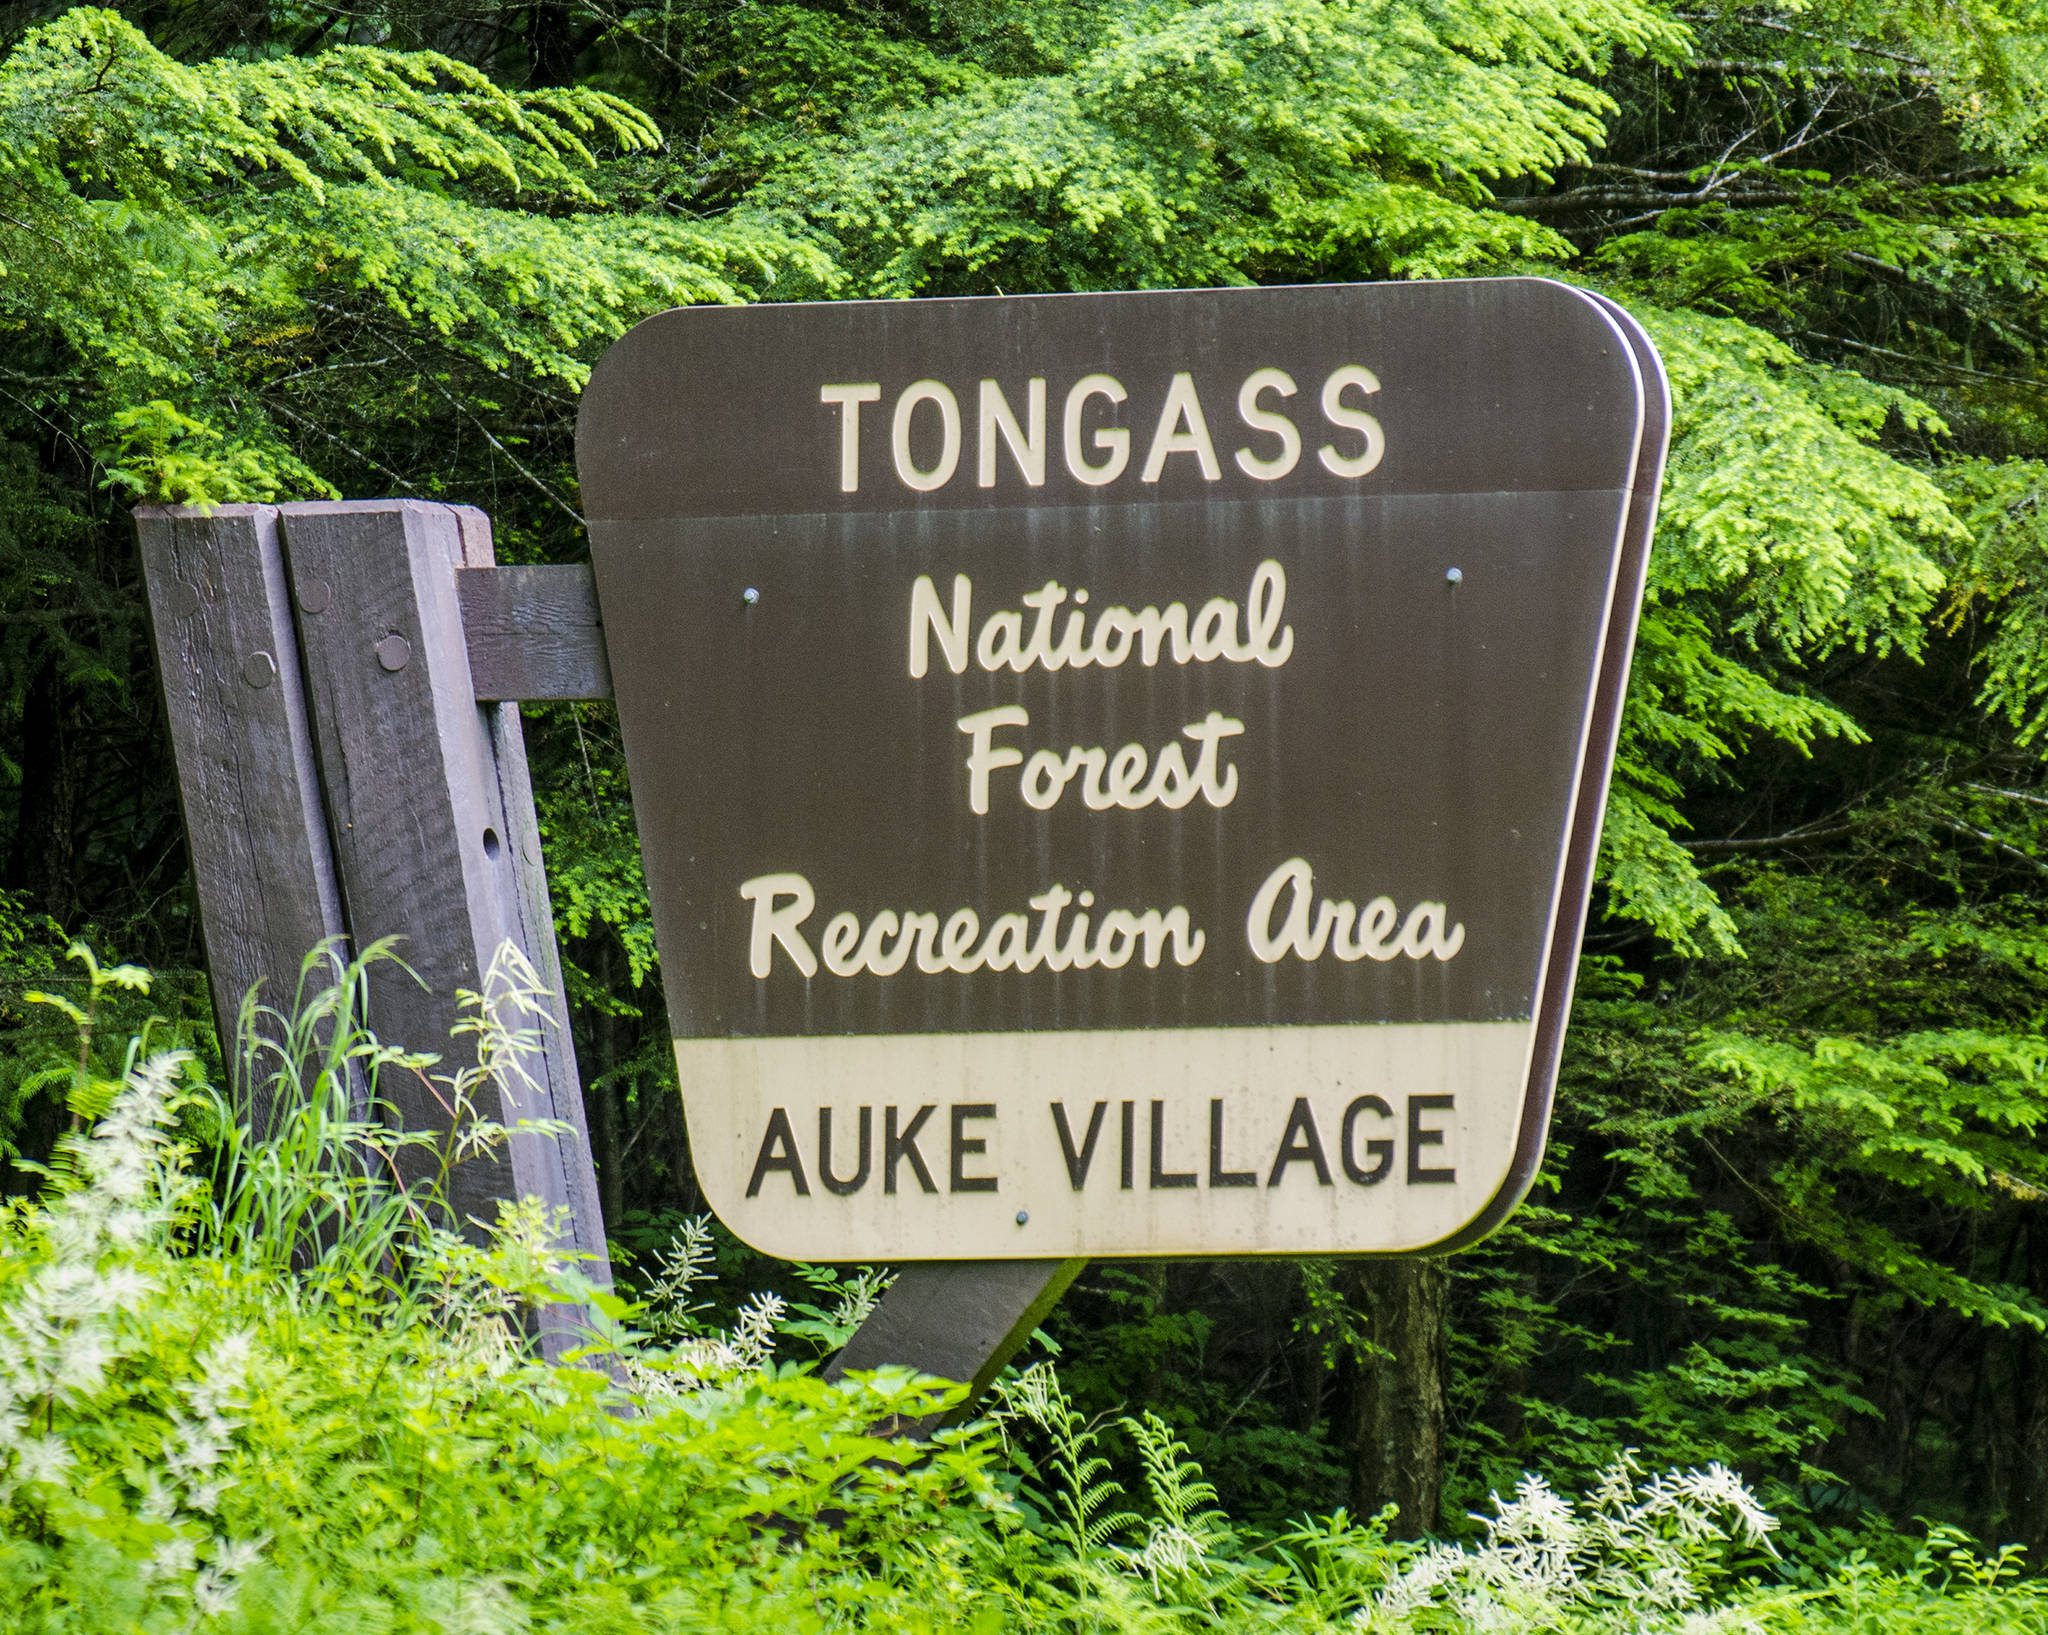 The Tongass National Forest sign stands near the Auke Village Recreation Area. (Juneau Empire File)